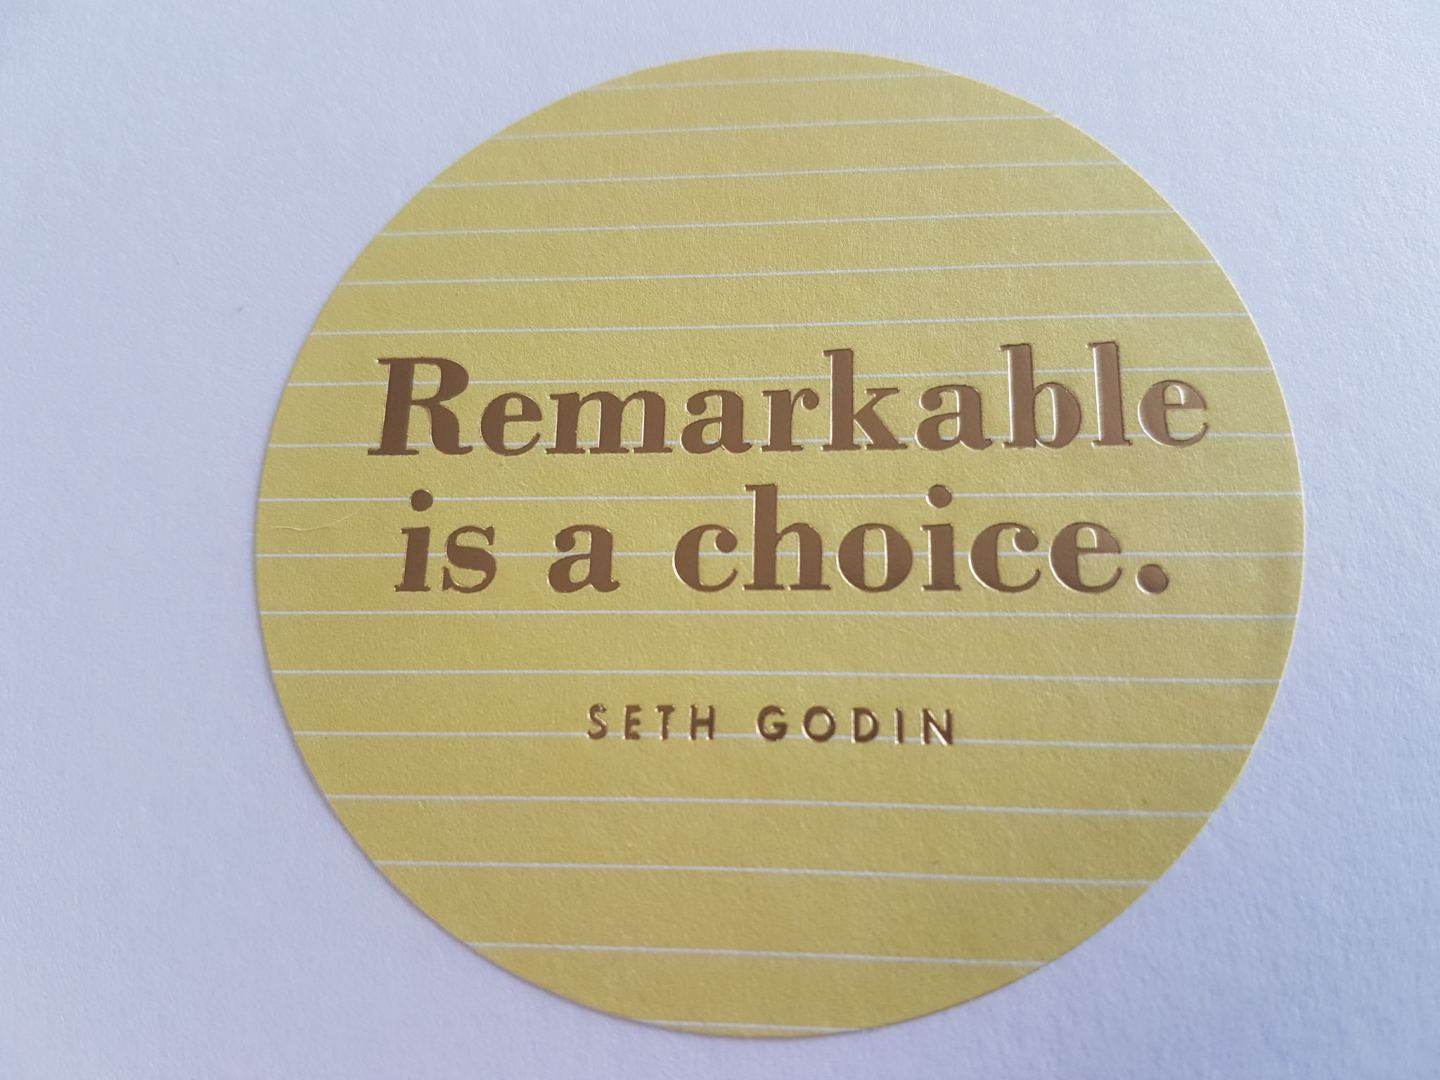 You can choose to be remarkable by increasing your confidence